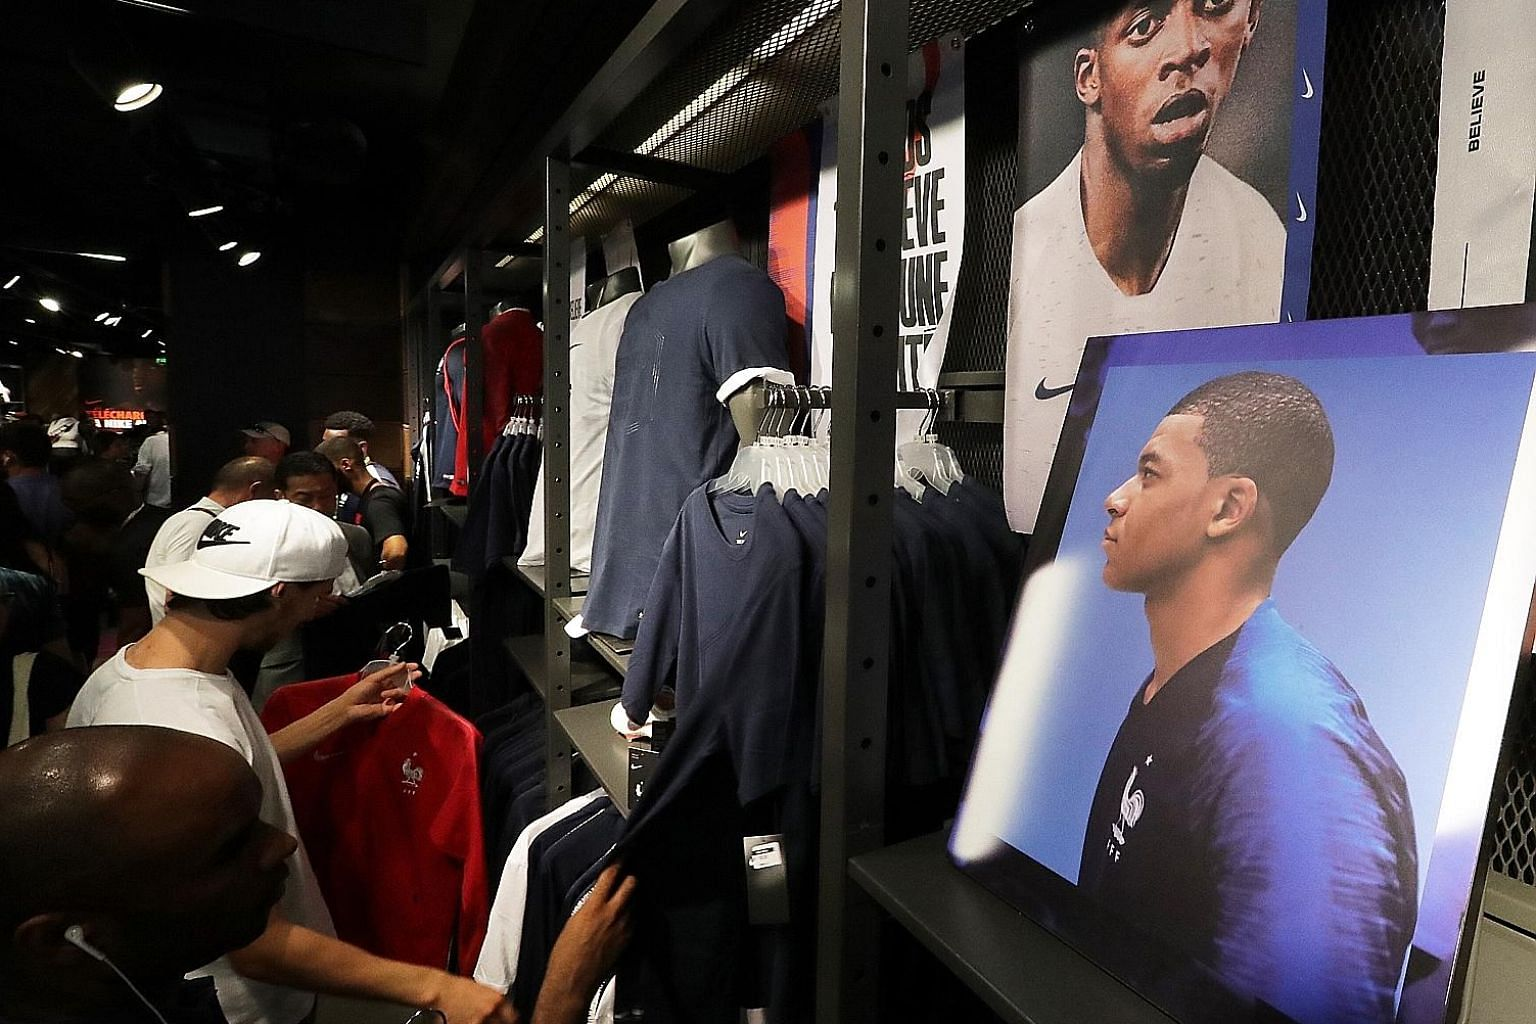 While the France jersey has been sold out at the Nike store on the Champs Elysees, shoppers continue to snap up other Les Bleus-themed apparel and gear.